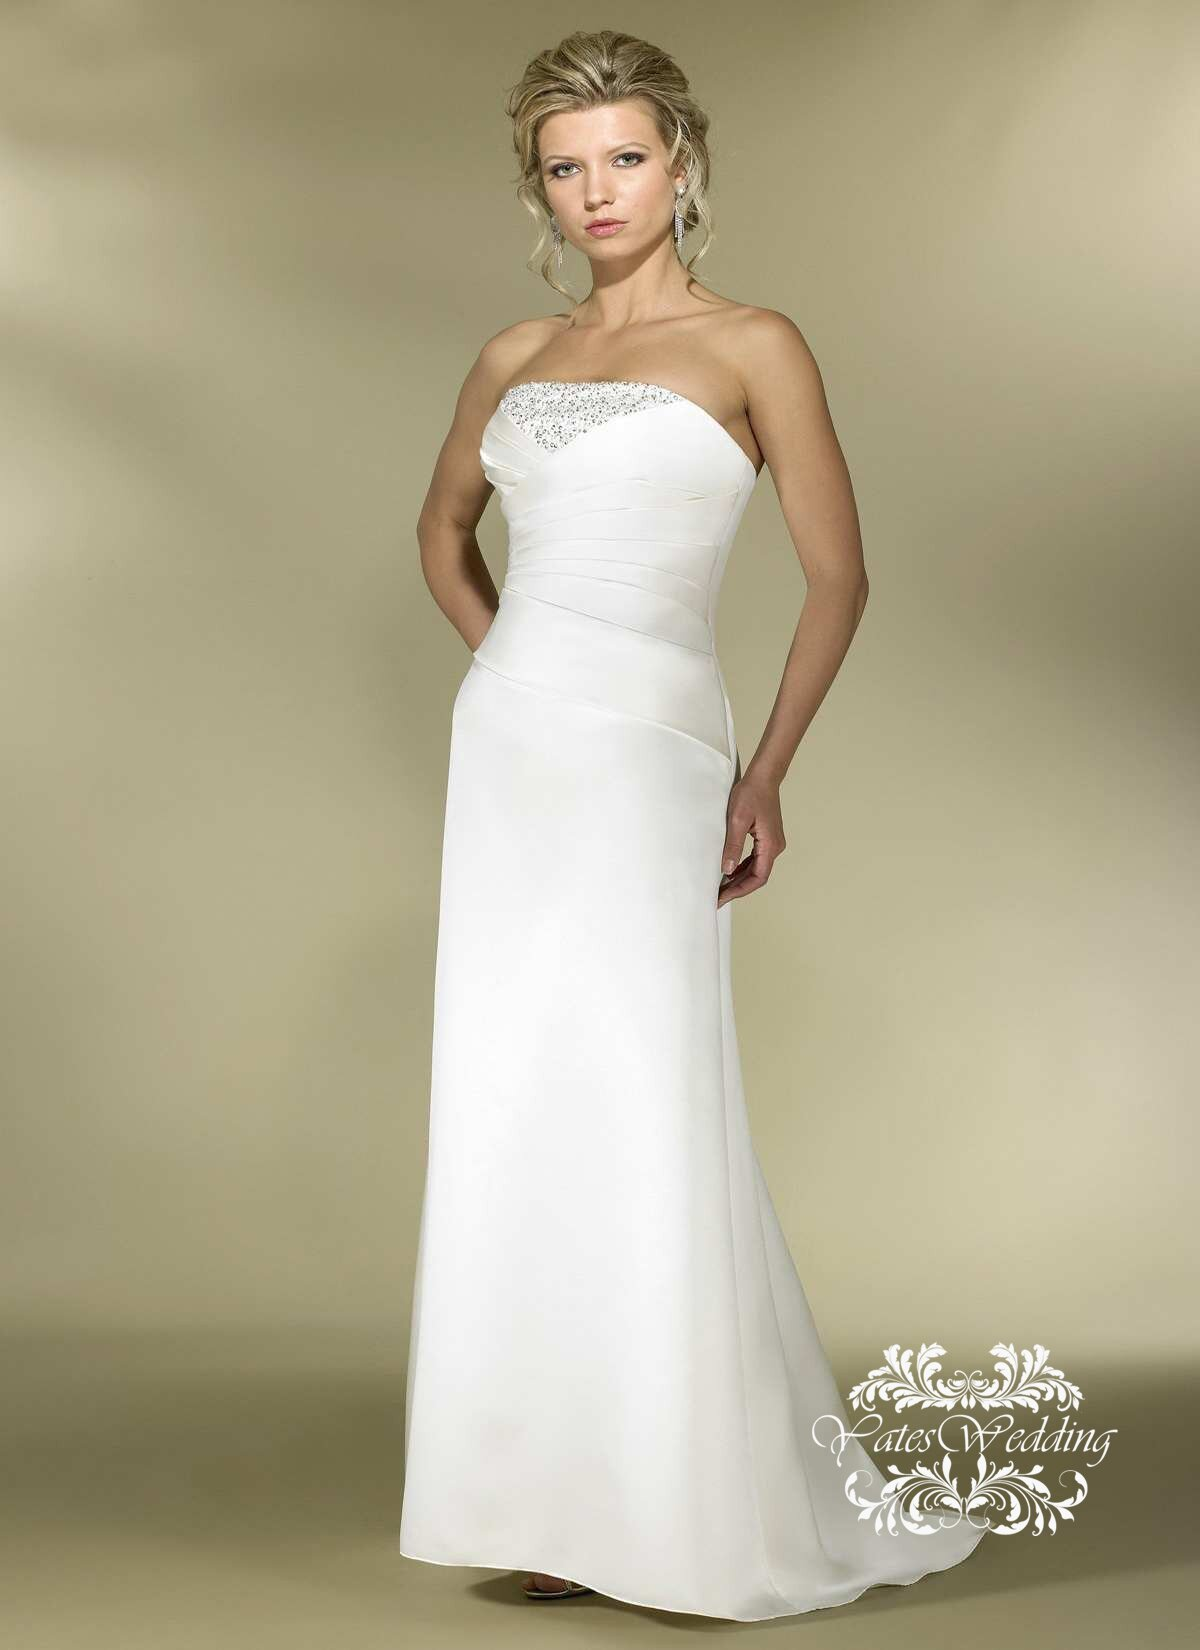 wedding dresses jcpenney jcpenney wedding dresses Wedding Dresses Jcpenney 35